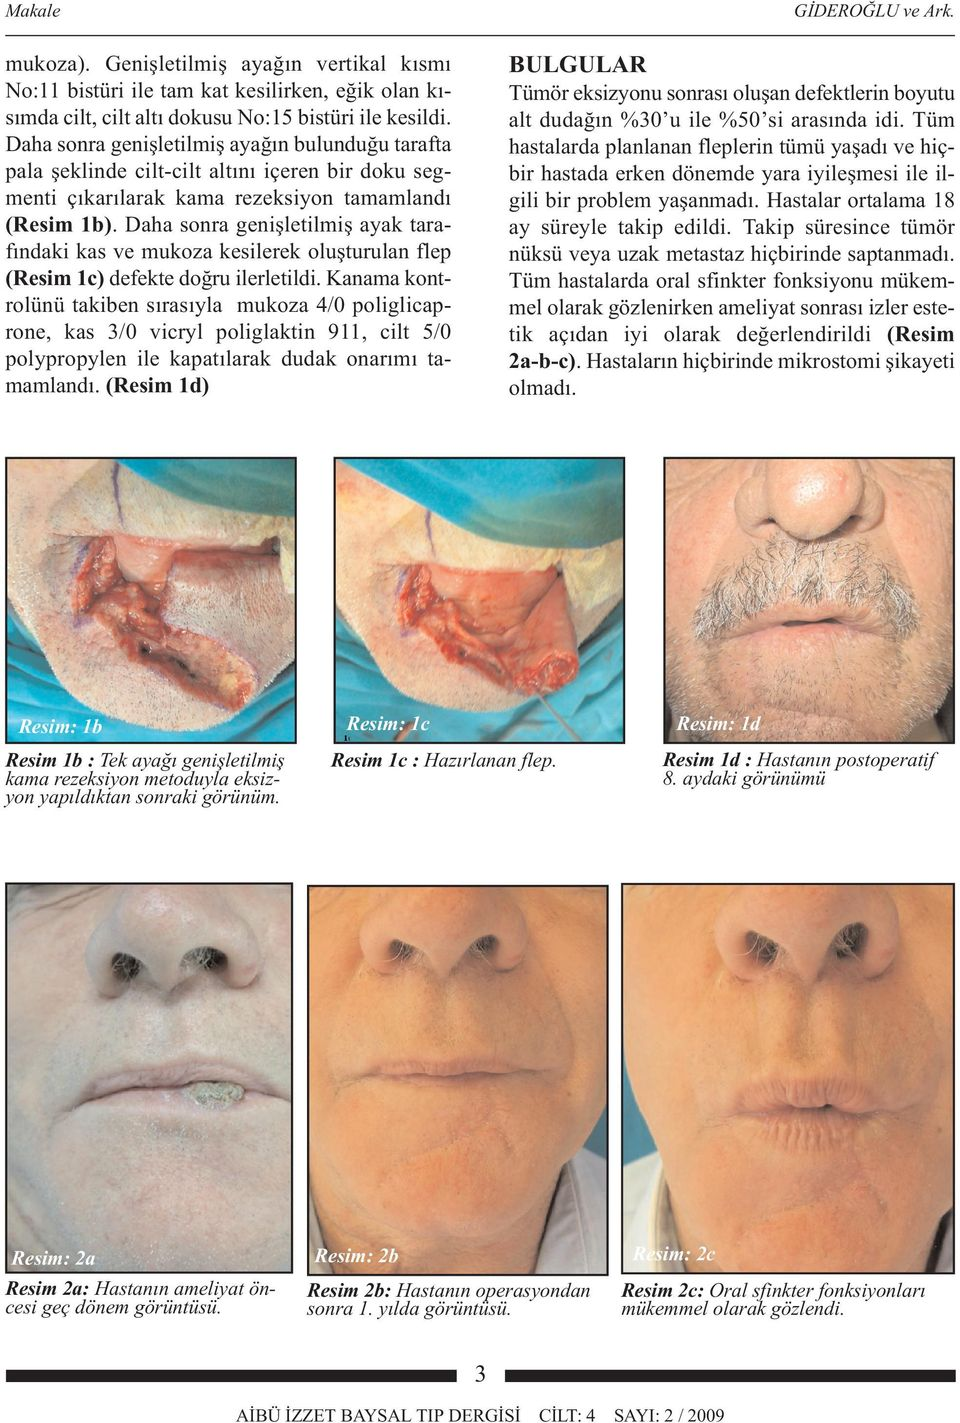 11. Nakajima T, Yoshimura Y, Kami T. Reconstruction of the lower lip with a fan-shaped flap based on the facial artery. Br J Plast Surg. 1984, 37:52-4. 12. McGregor IA.